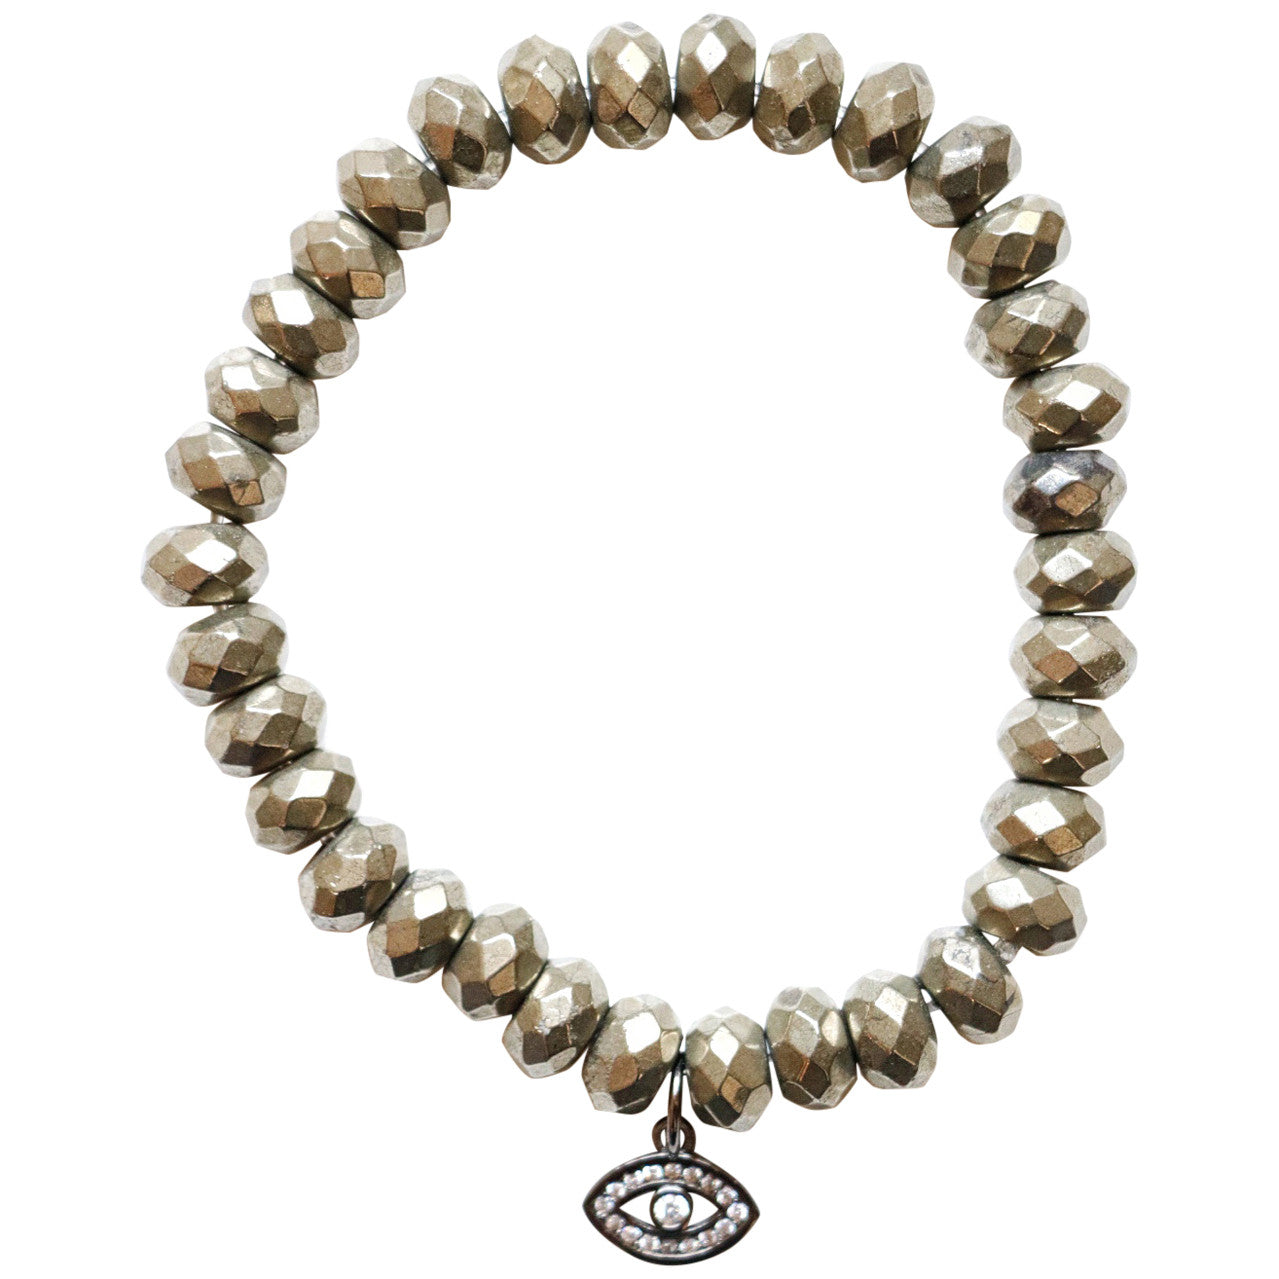 Molly Jane Designs Rondell Pyrite Charm Bracelet